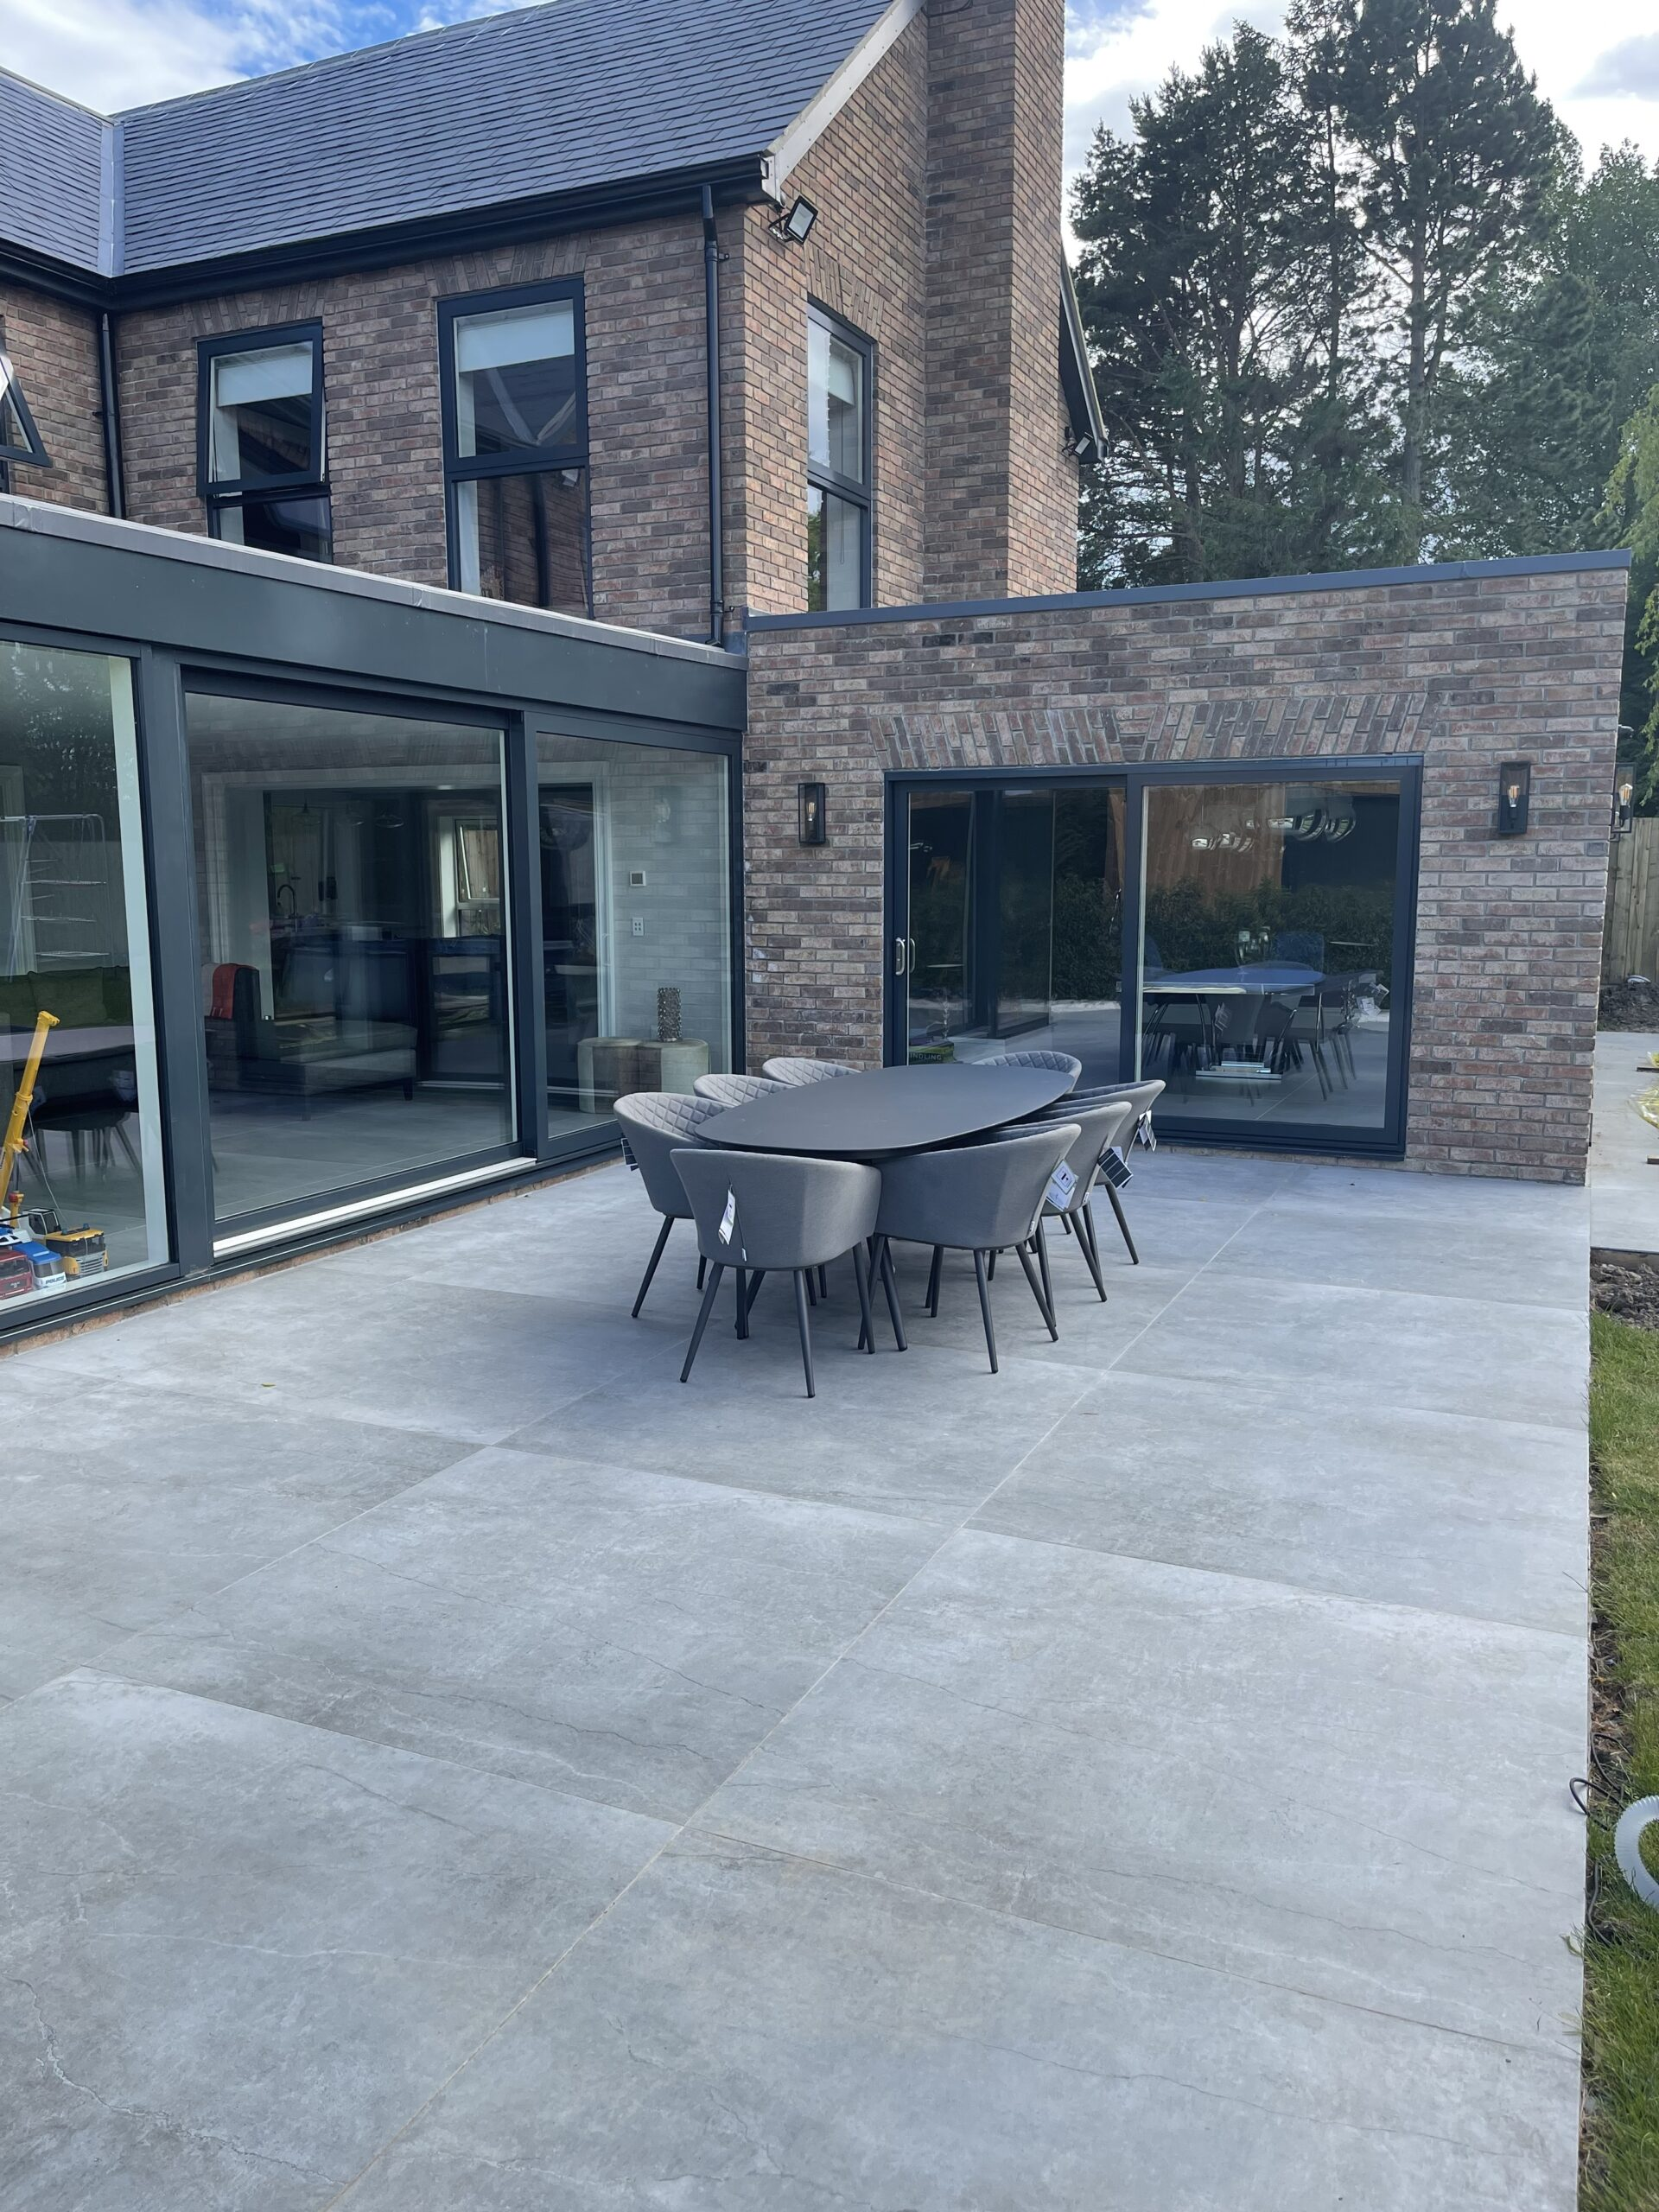 Image of Outdoor Image scaled 1 in Dekton Flooring and Kitchen Worksurfaces Add Timeless Elegance to This Classic Family Home - Cosentino